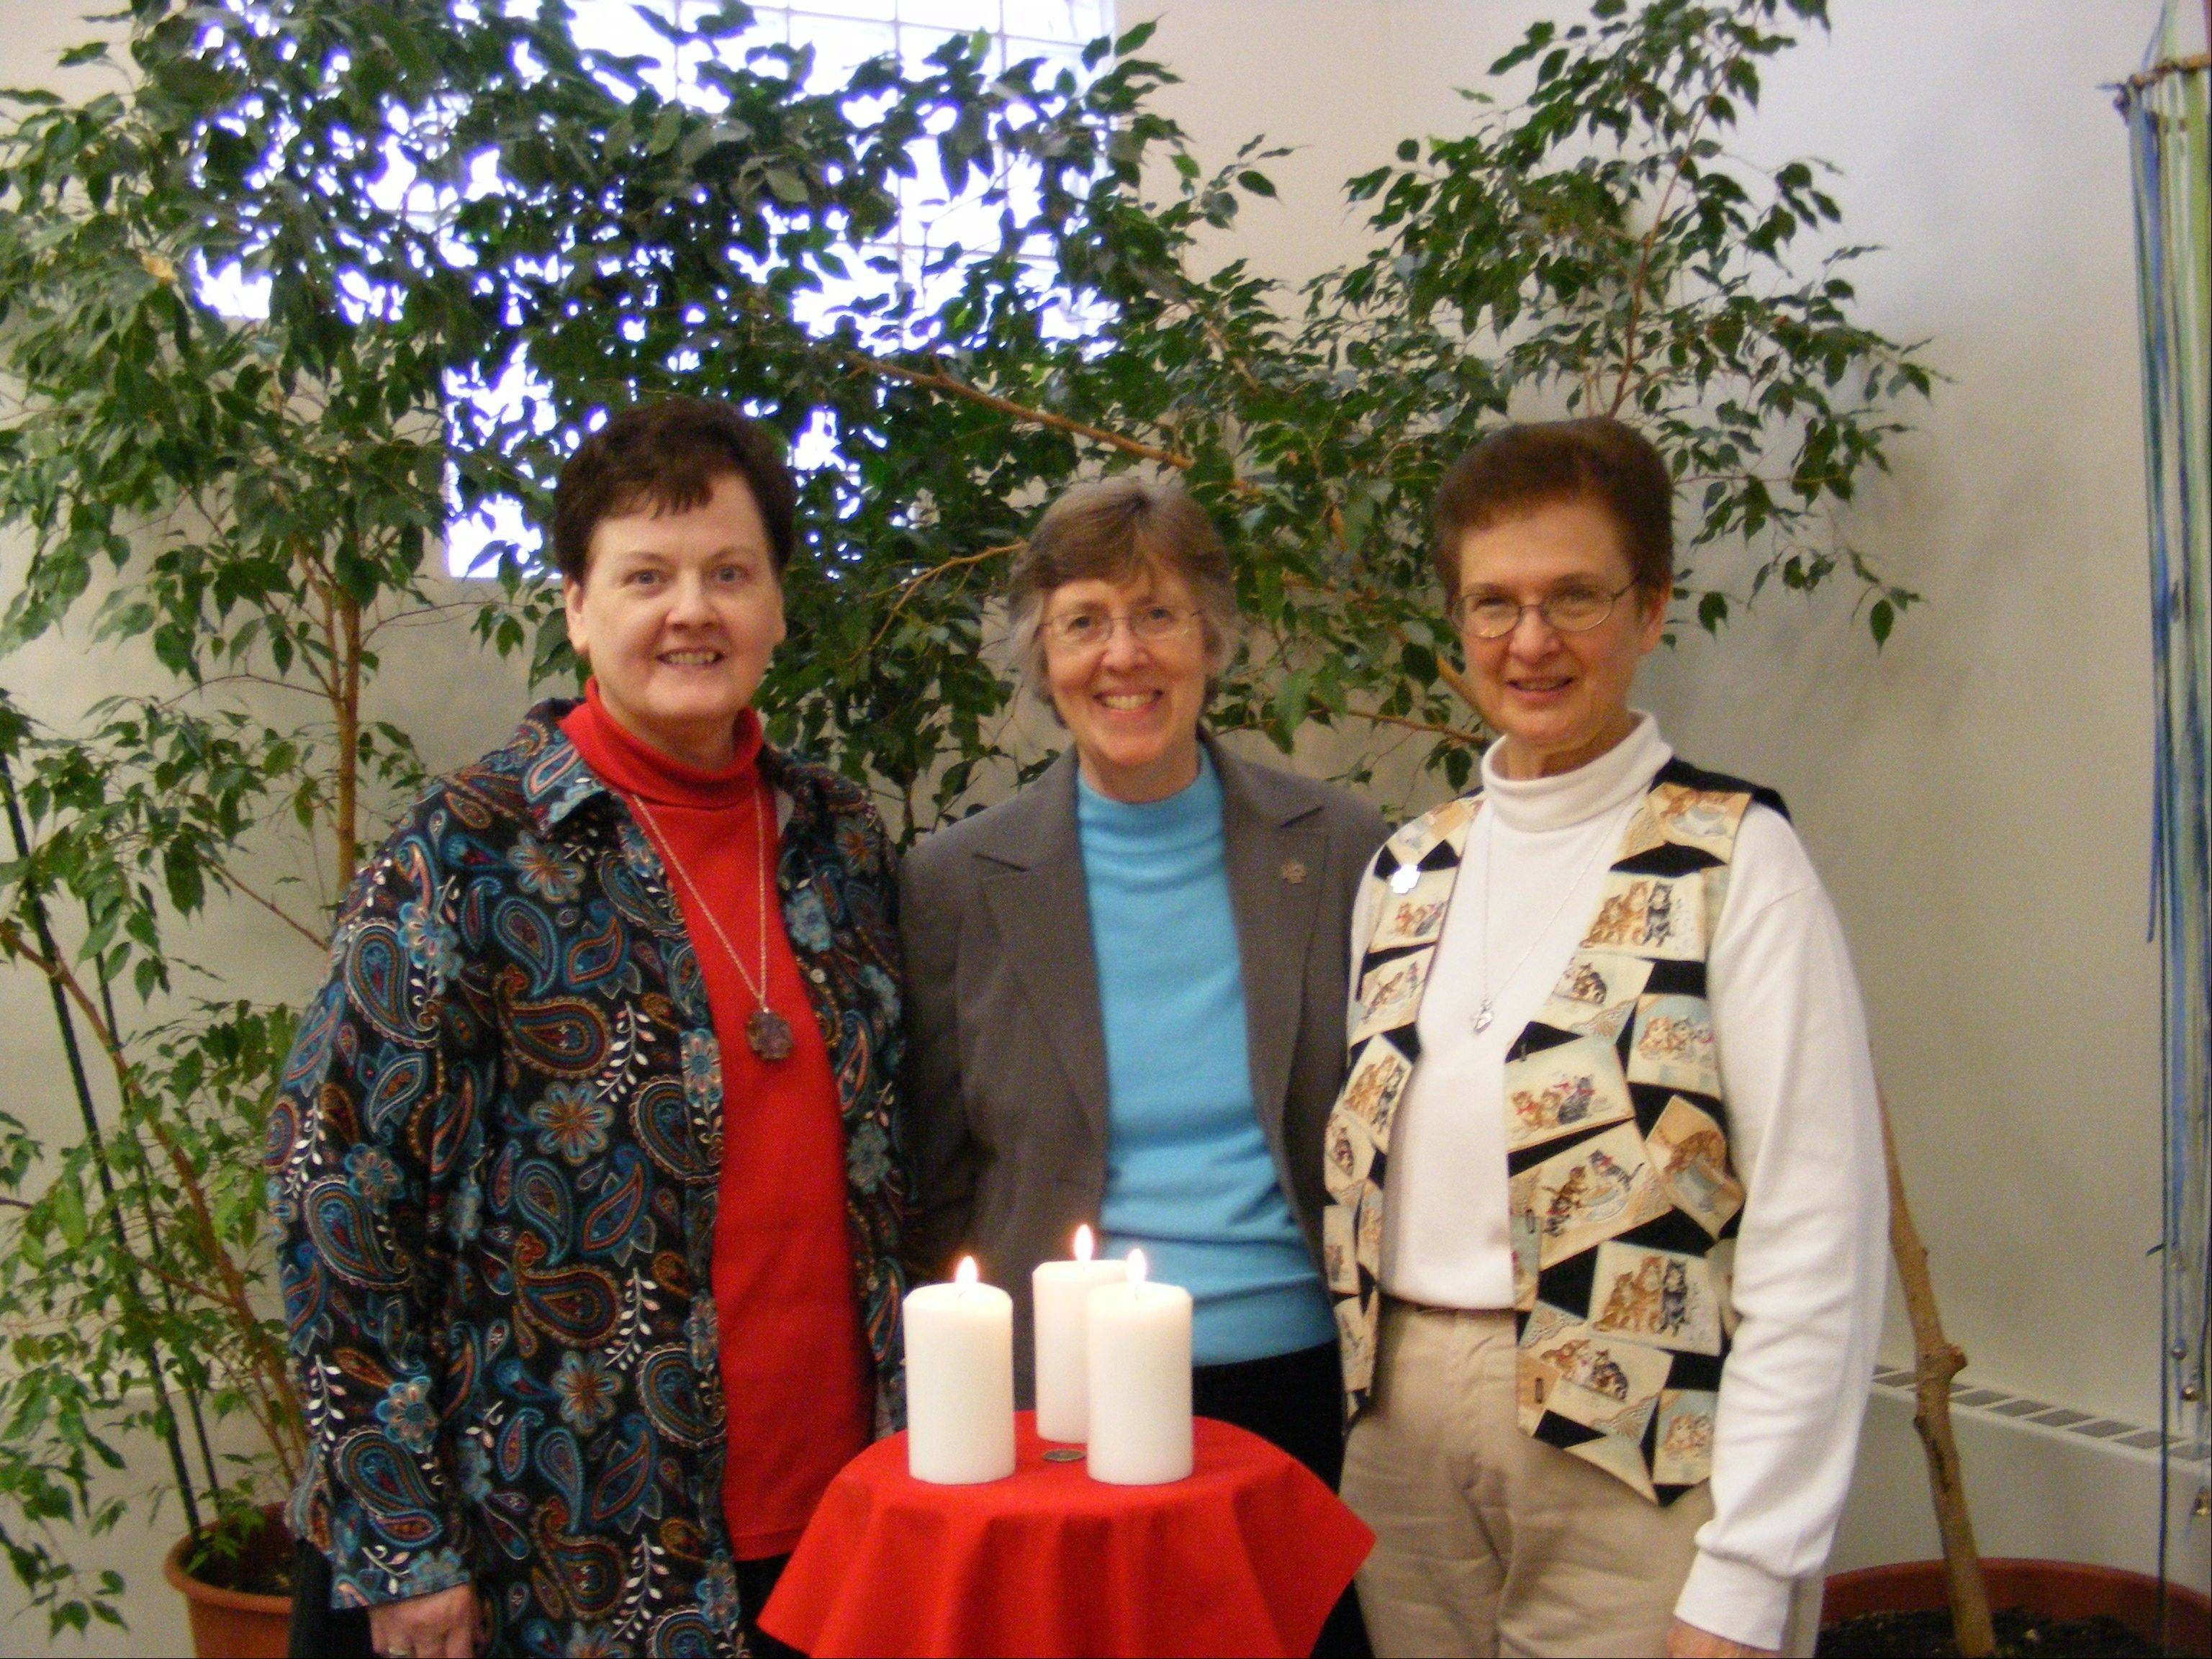 Sisters Kathleen, Kristine and Sharon share in prayer at the close of the assembly of the Sisters of the Living Word on Sunday, Feb. 10, at the Living Word Center in Arlington Heights.